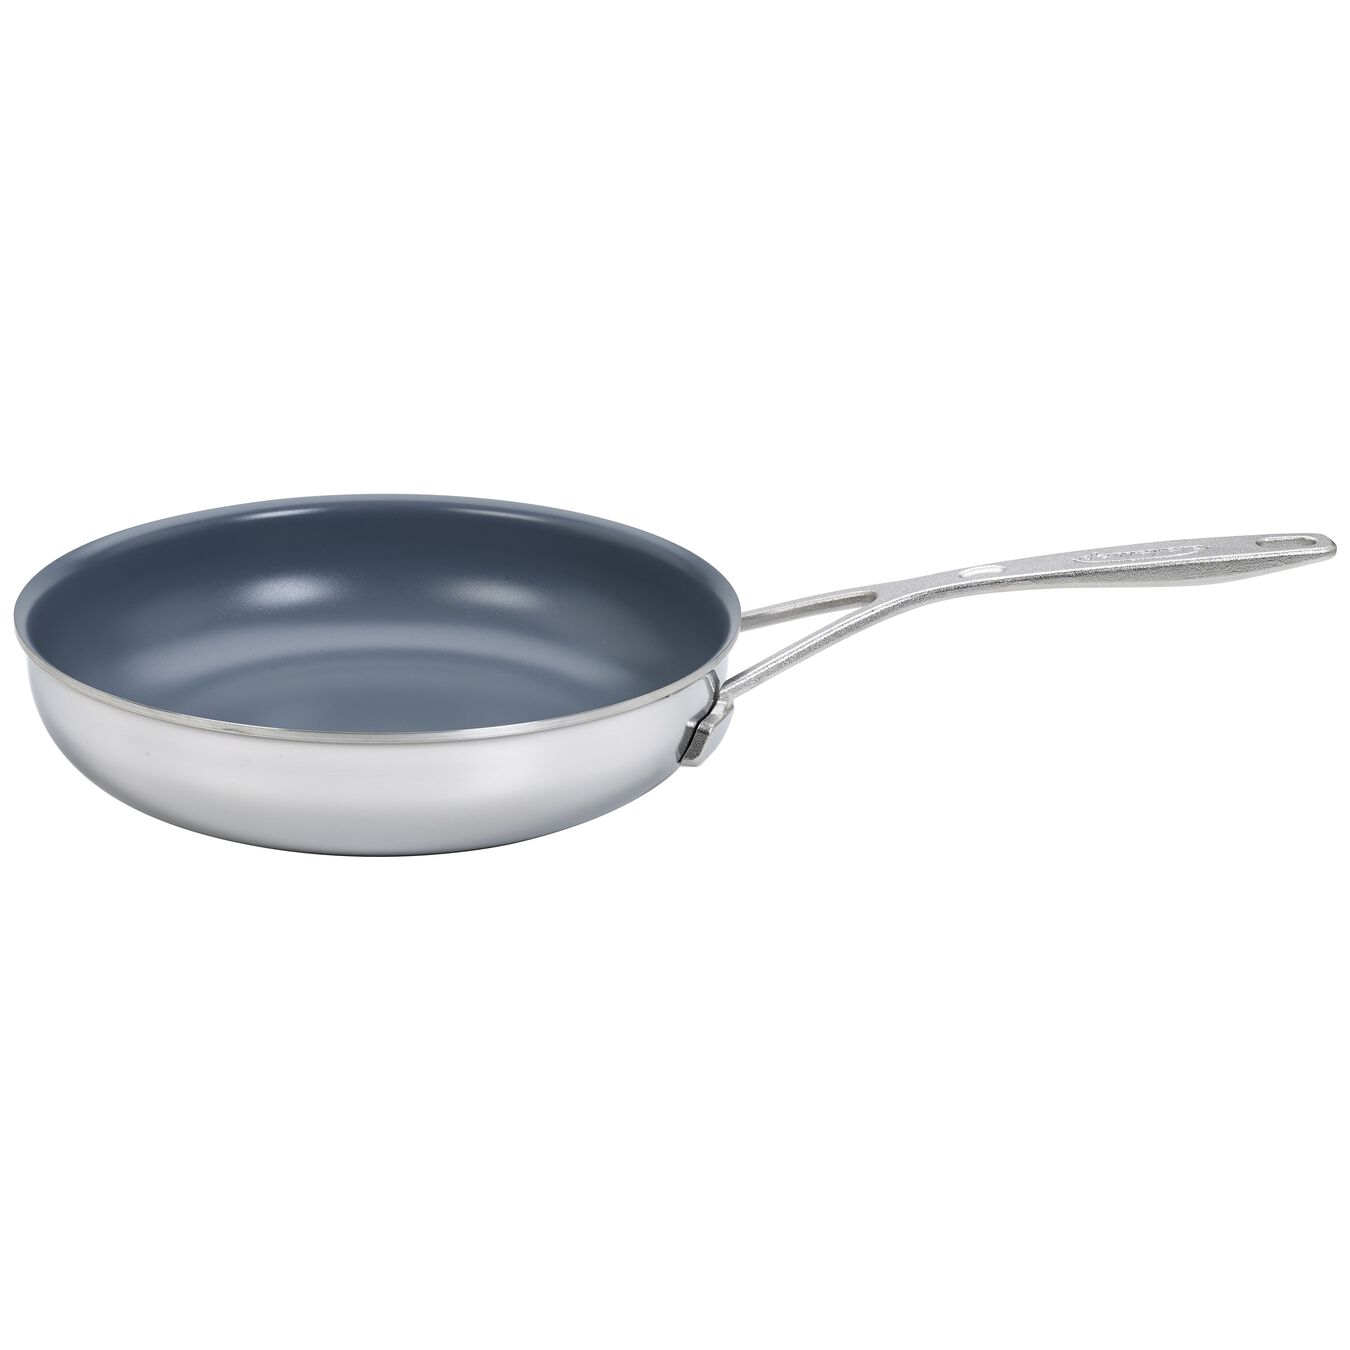 9.5-inch, 18/10 Stainless Steel, Ceramic, Frying pan,,large 1